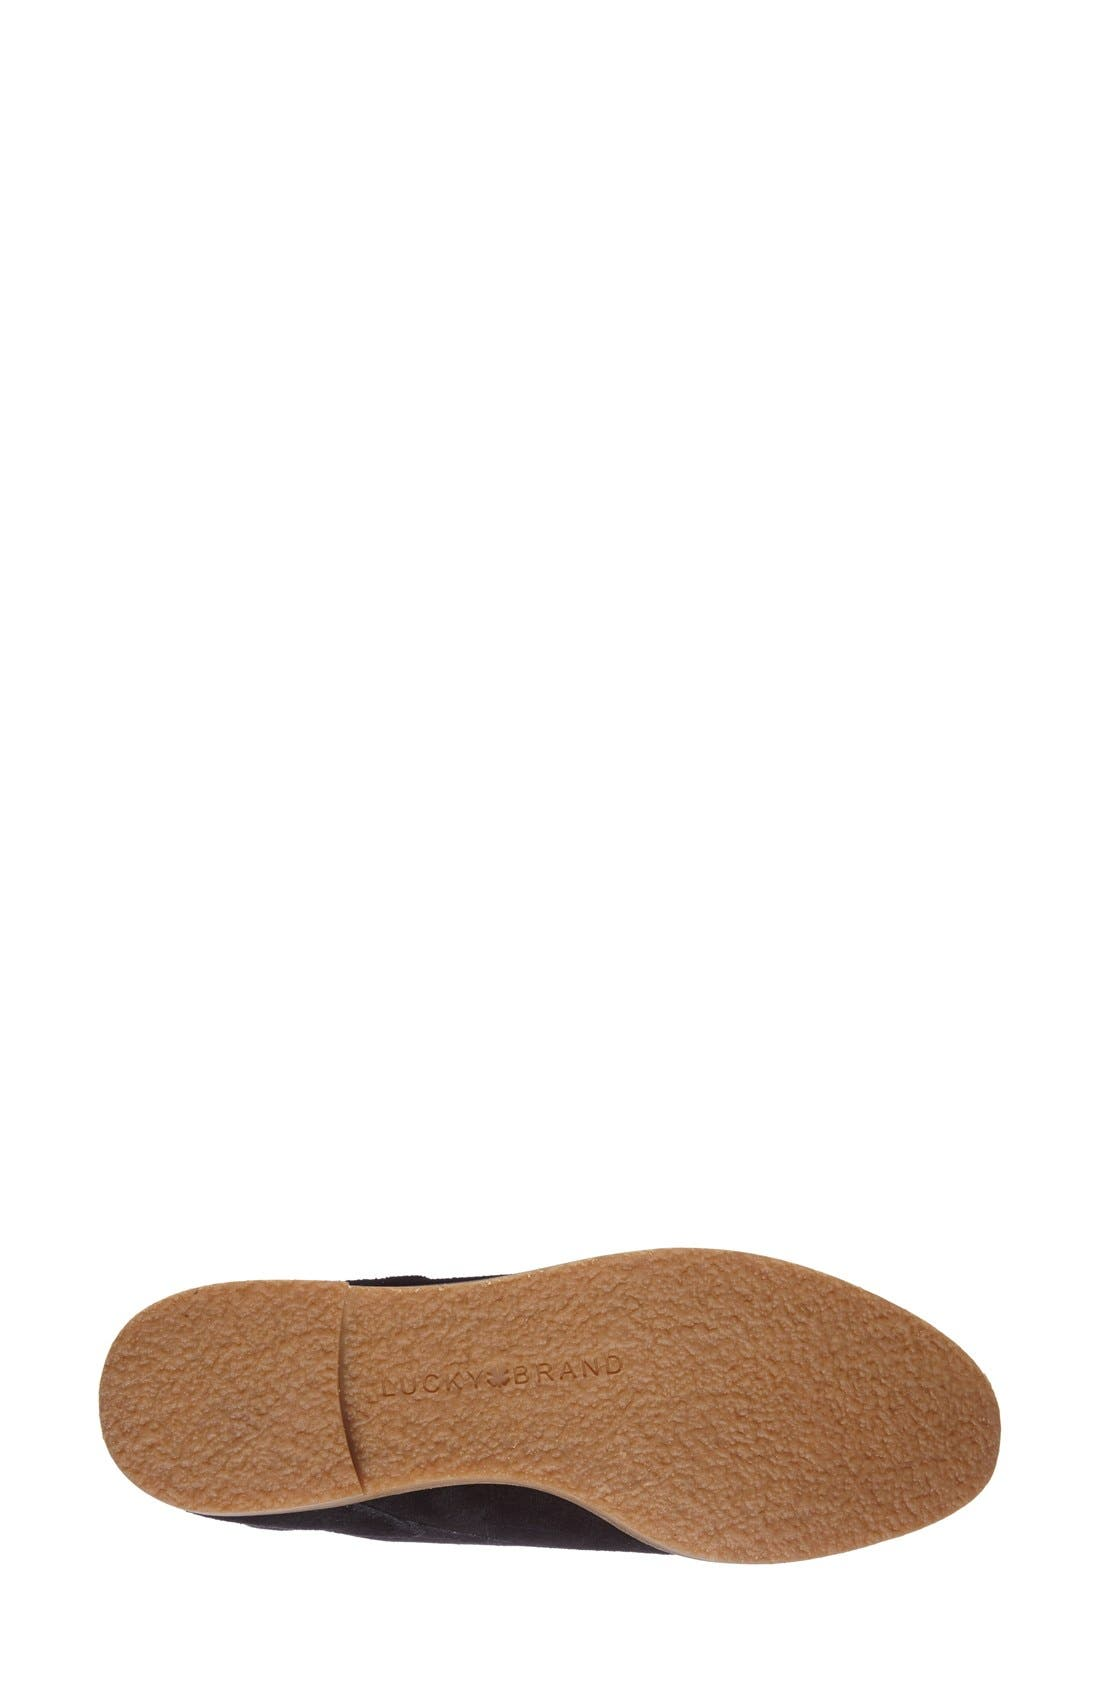 LuckyBrand'Garboh'Lace-UpBootie,                             Alternate thumbnail 3, color,                             001